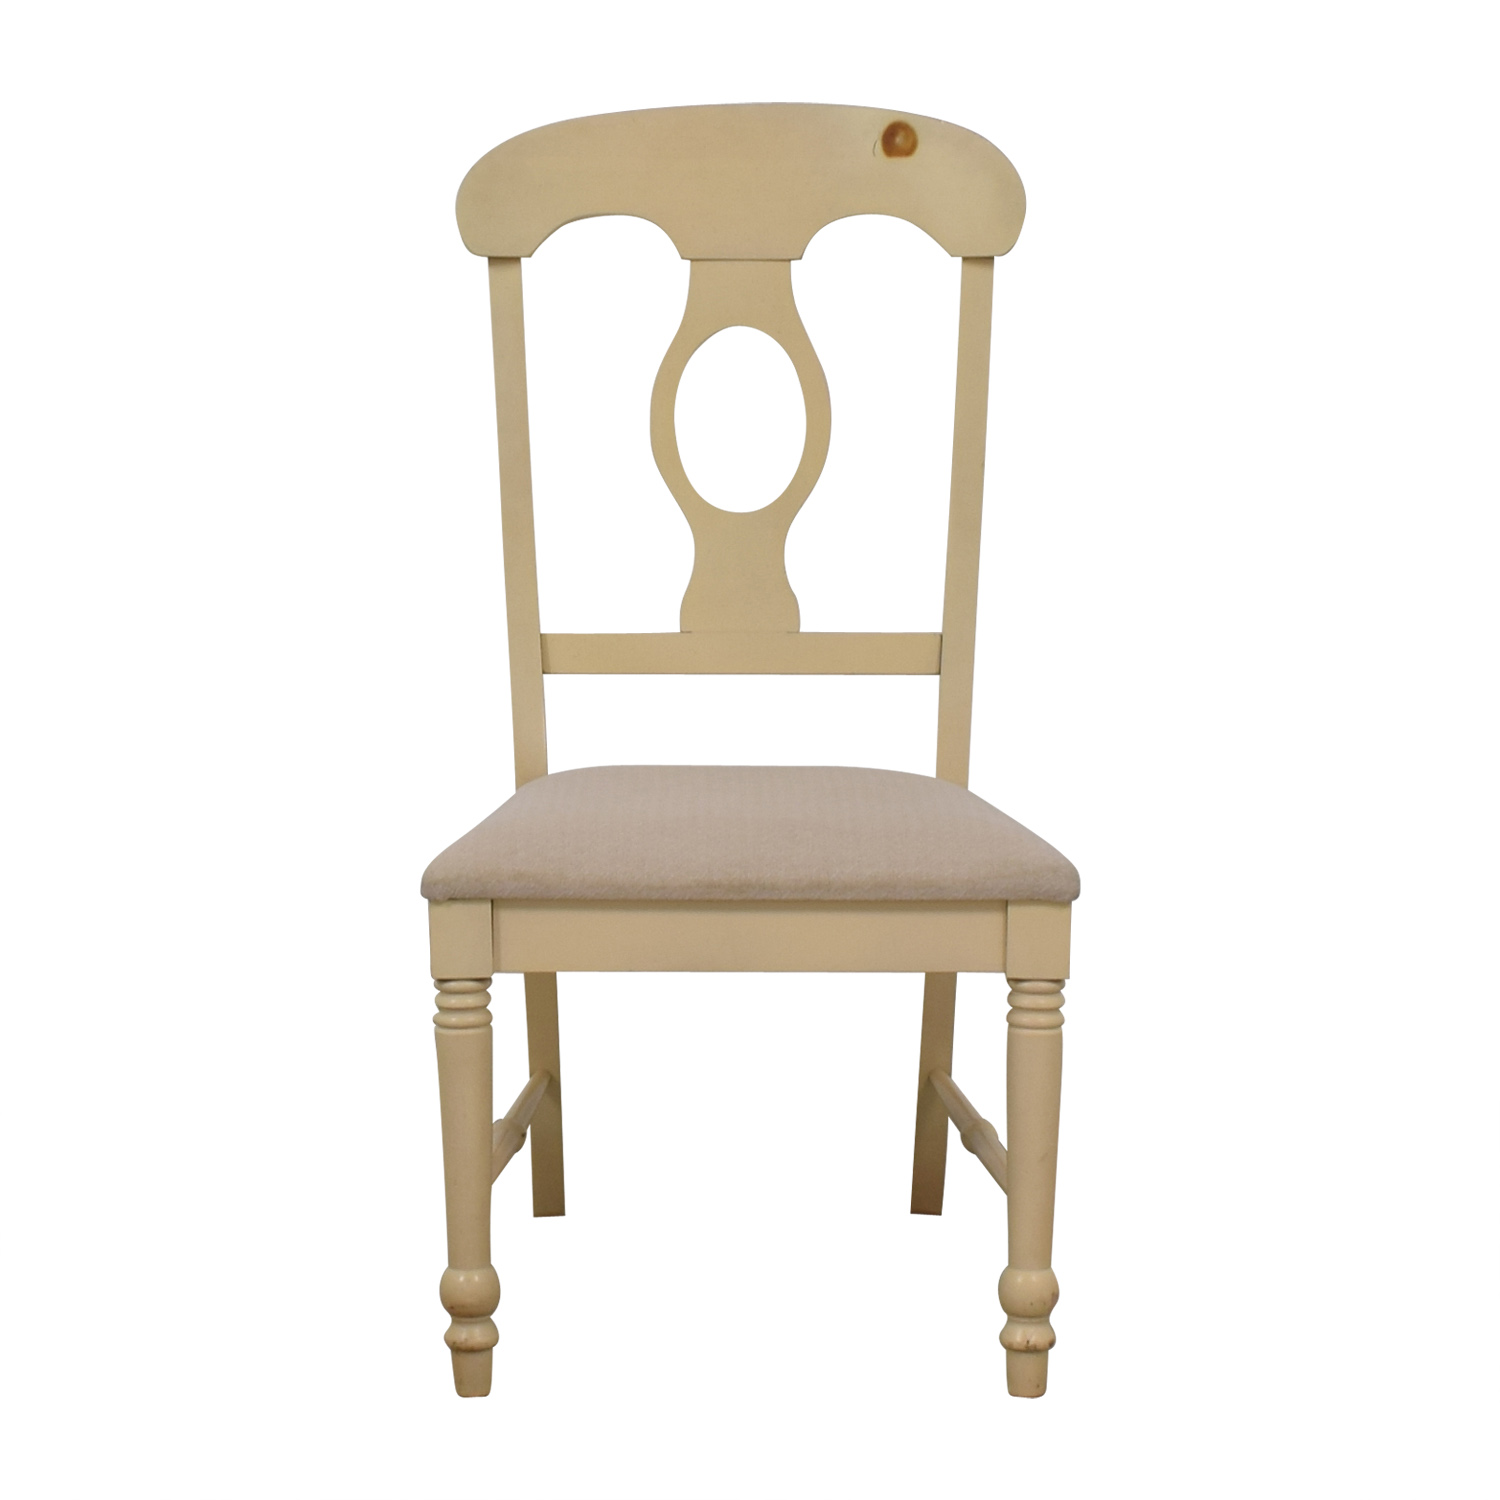 White Desk Chair Wood 90 Off Broyhill Furniture Broyhill White Desk Chair Chairs